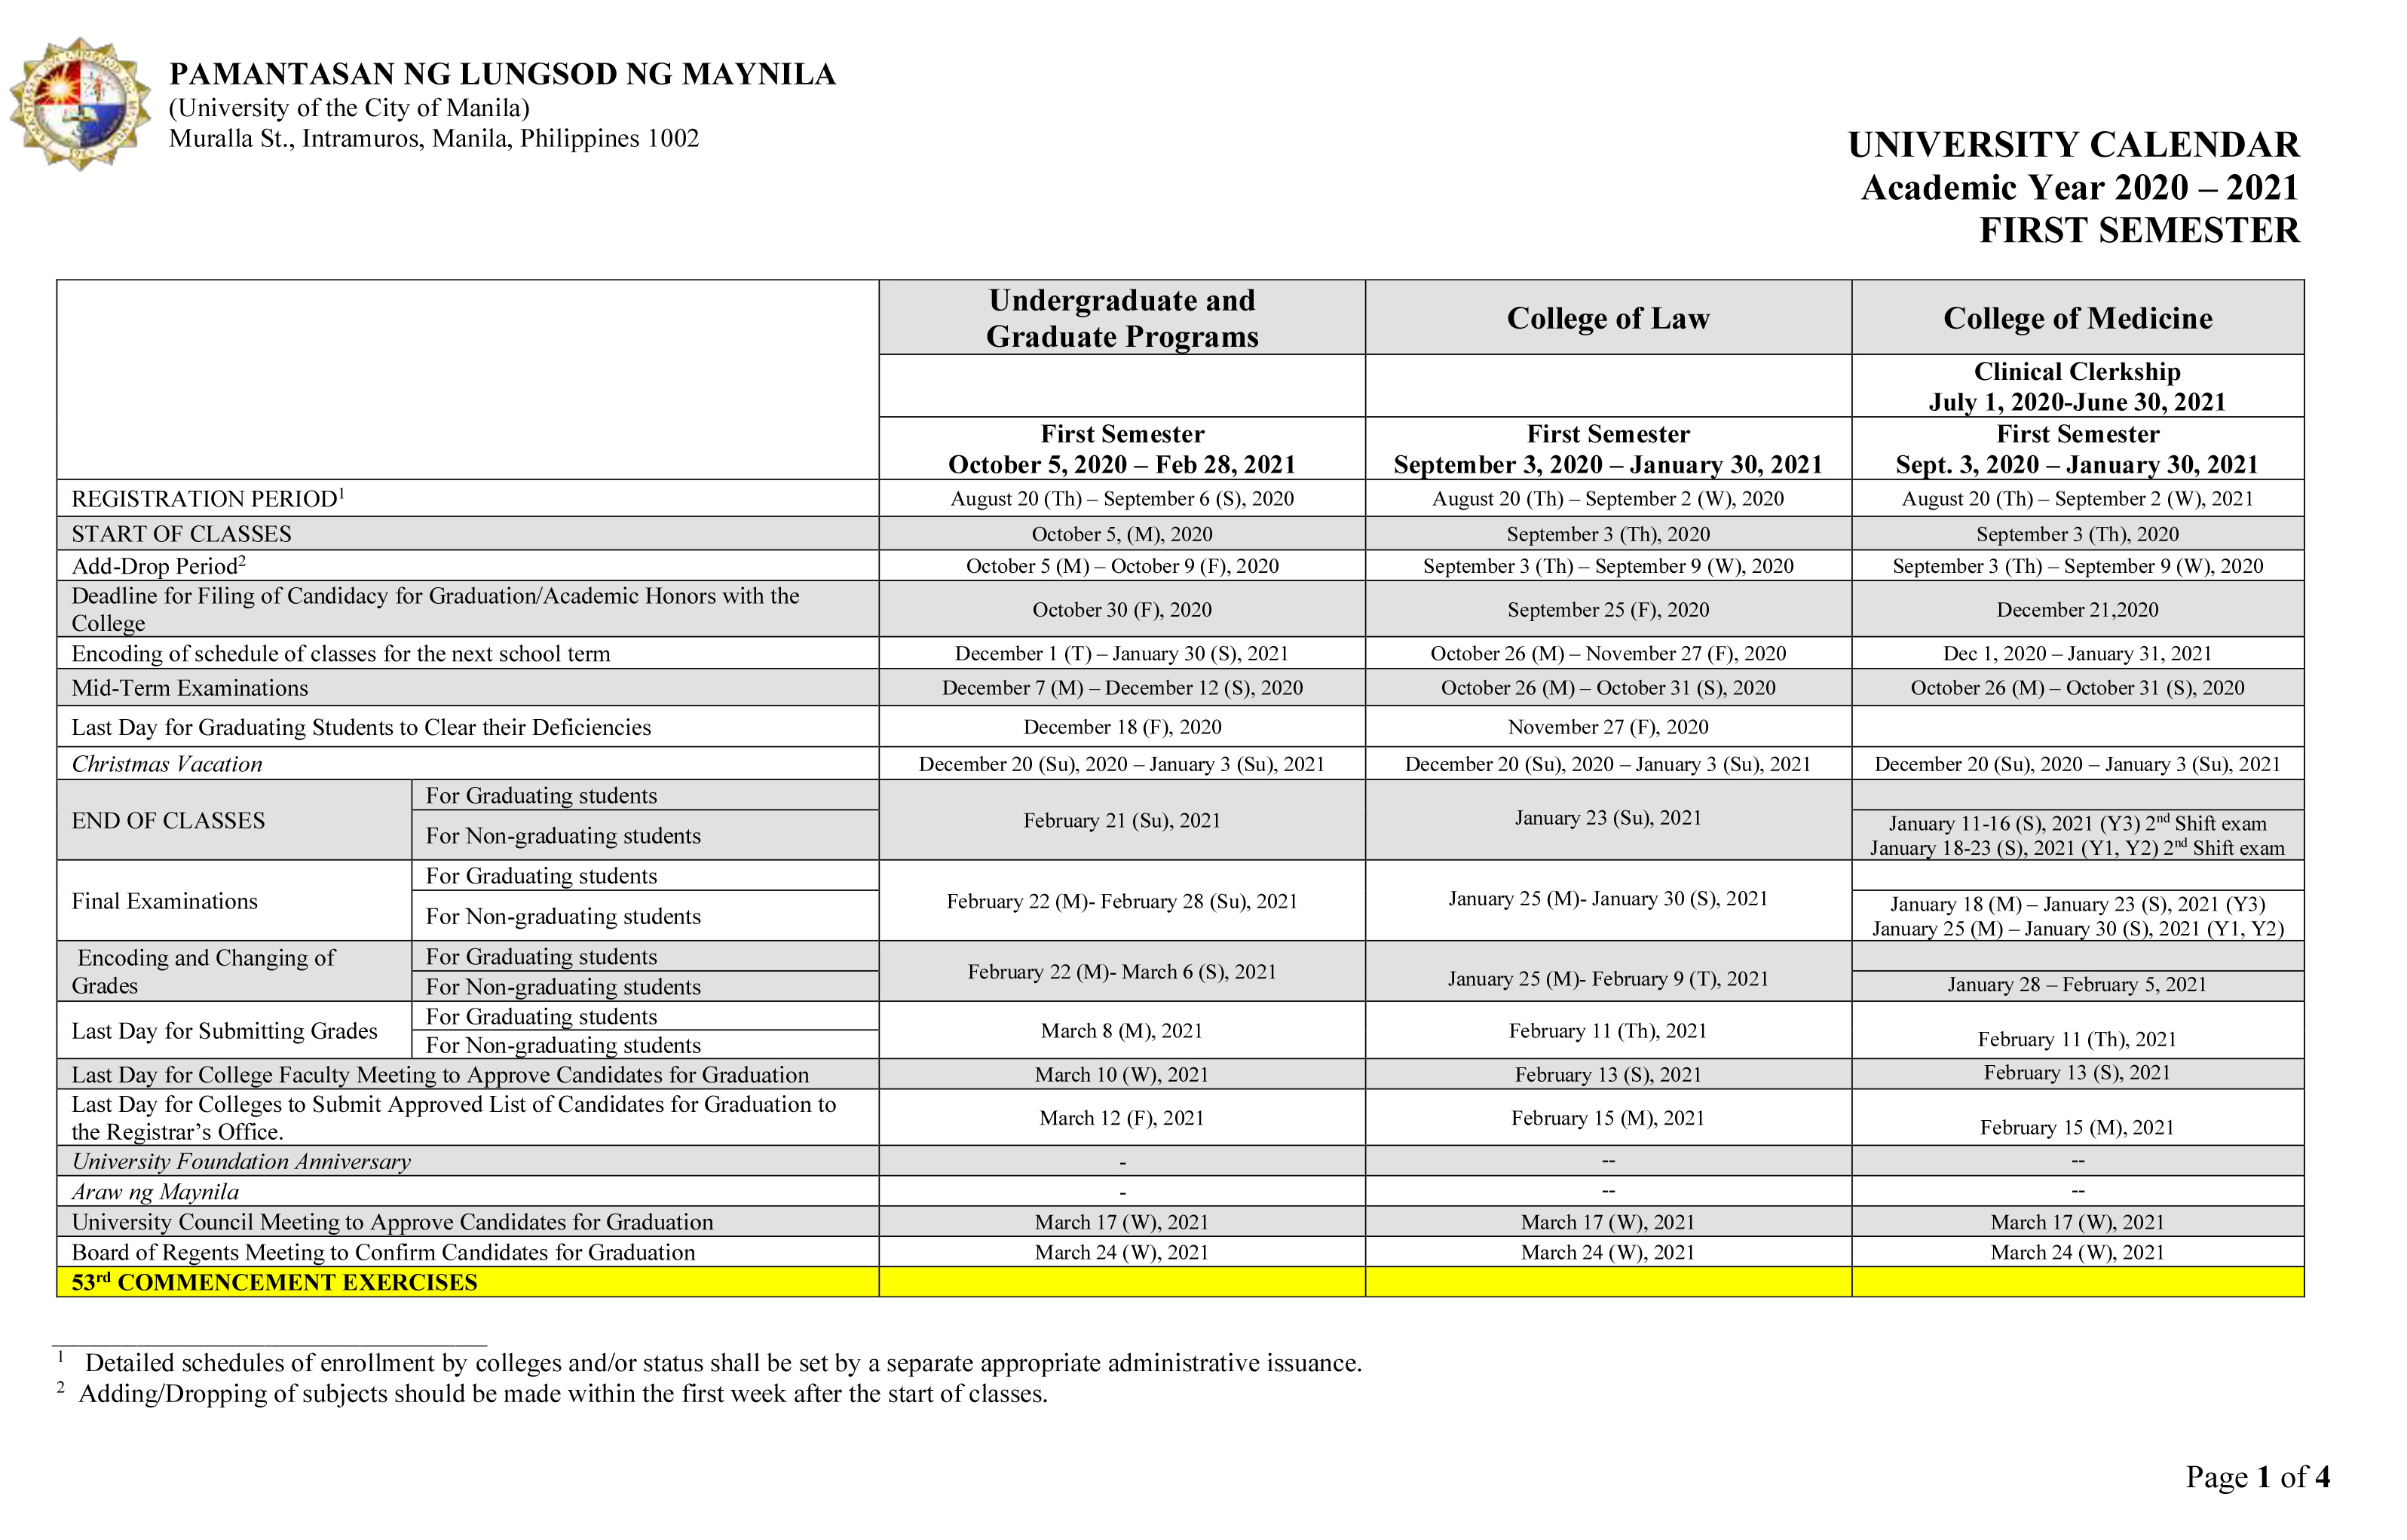 PLM Academic Calendar for AY 2020-2021 - p1 of 4